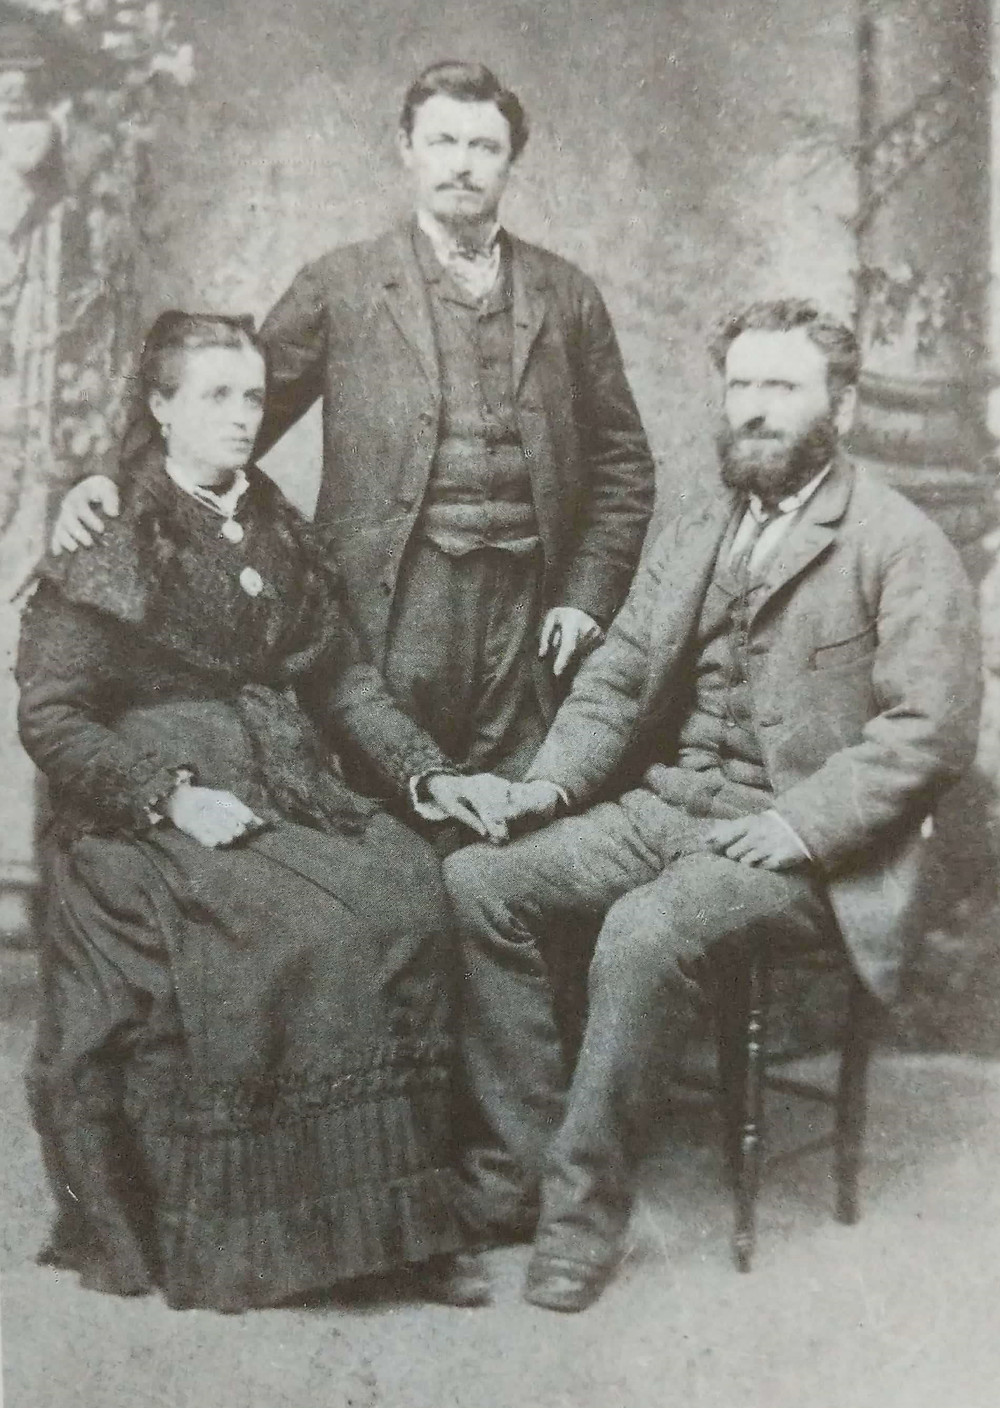 The De Bedin family - Mother and sons Pietro and Giovanni - in Domanins, 1882.